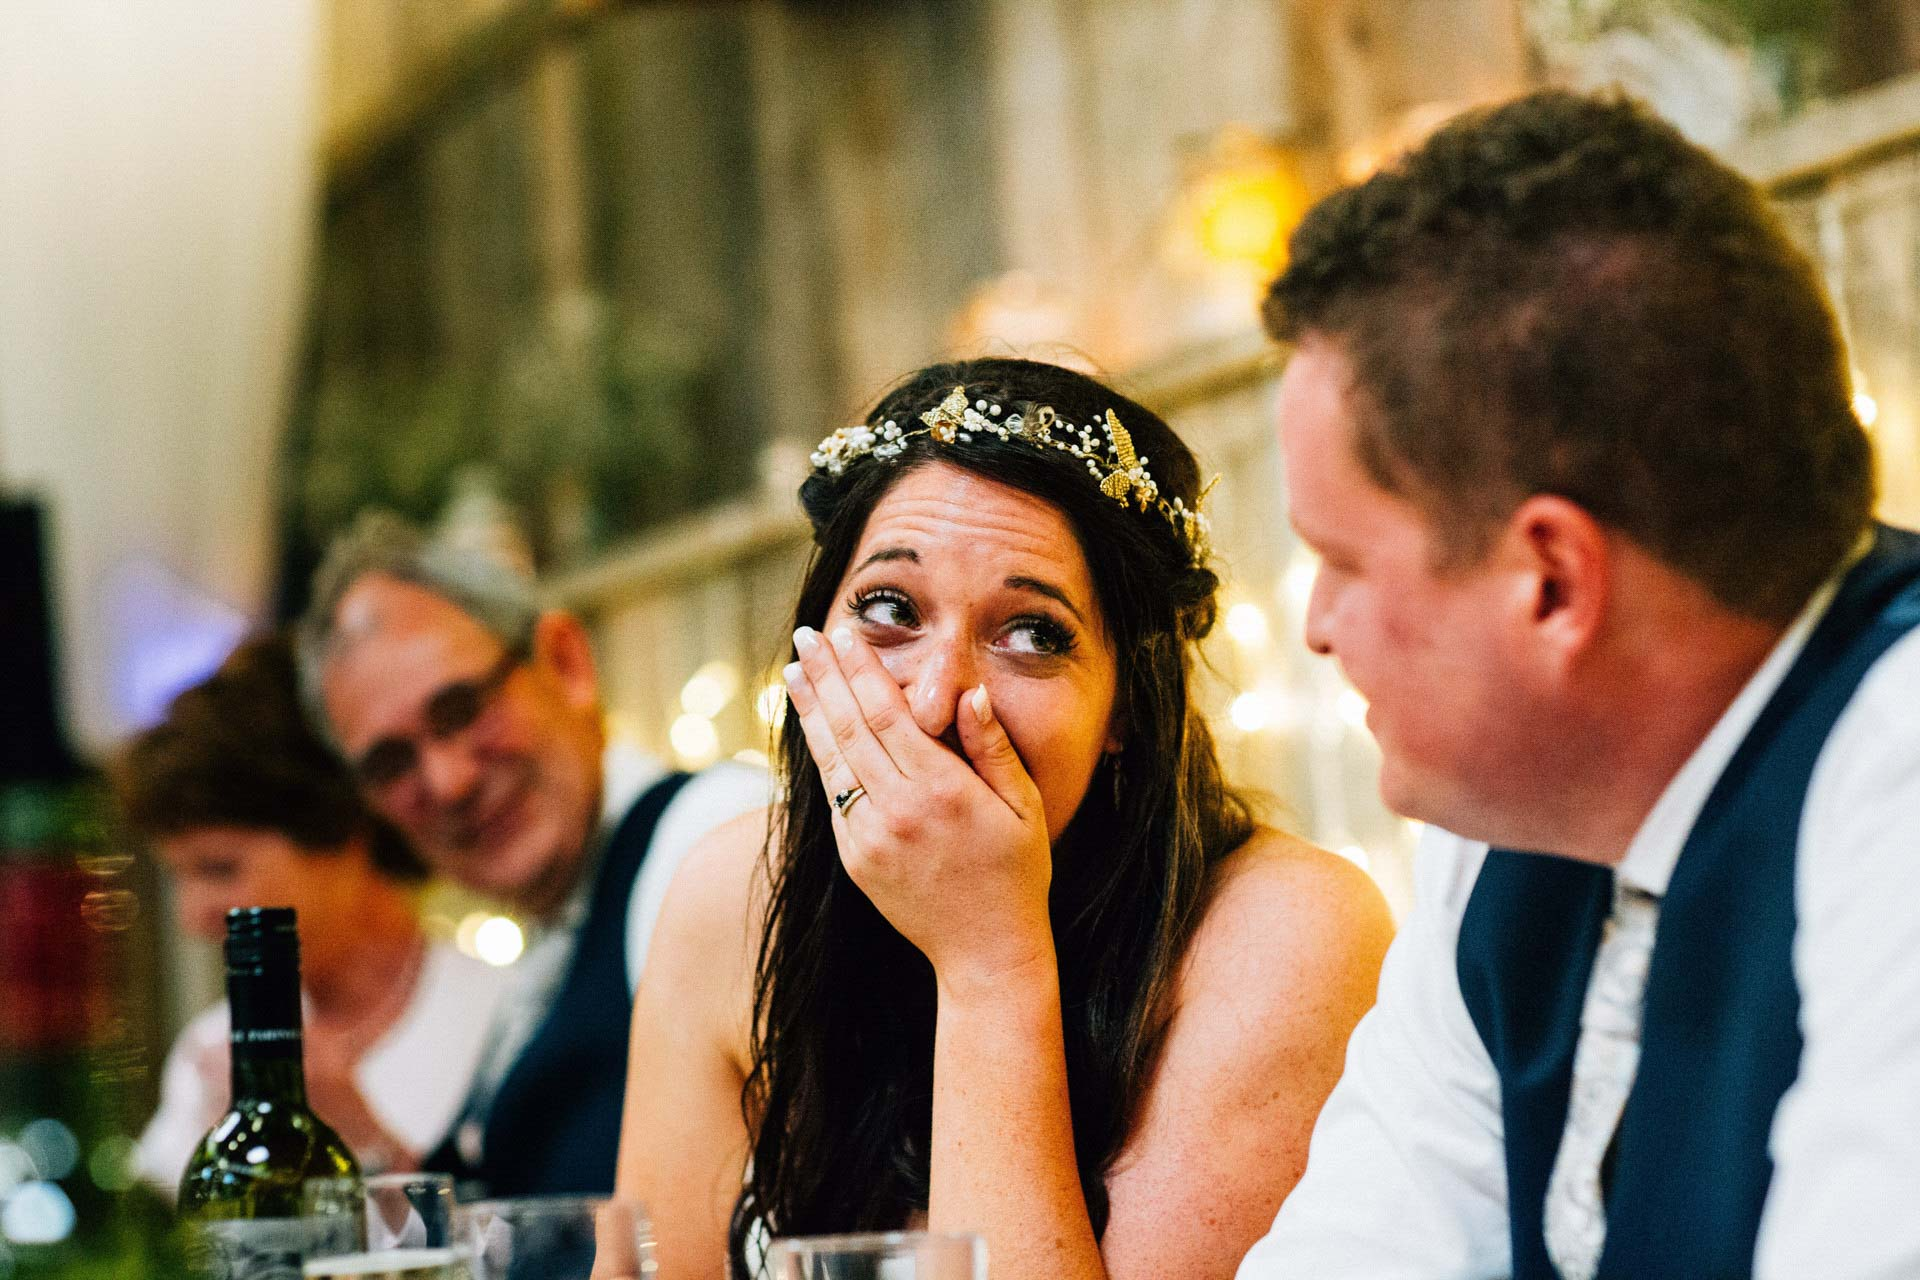 Best wedding photography 2016 - bride laughing during speeches